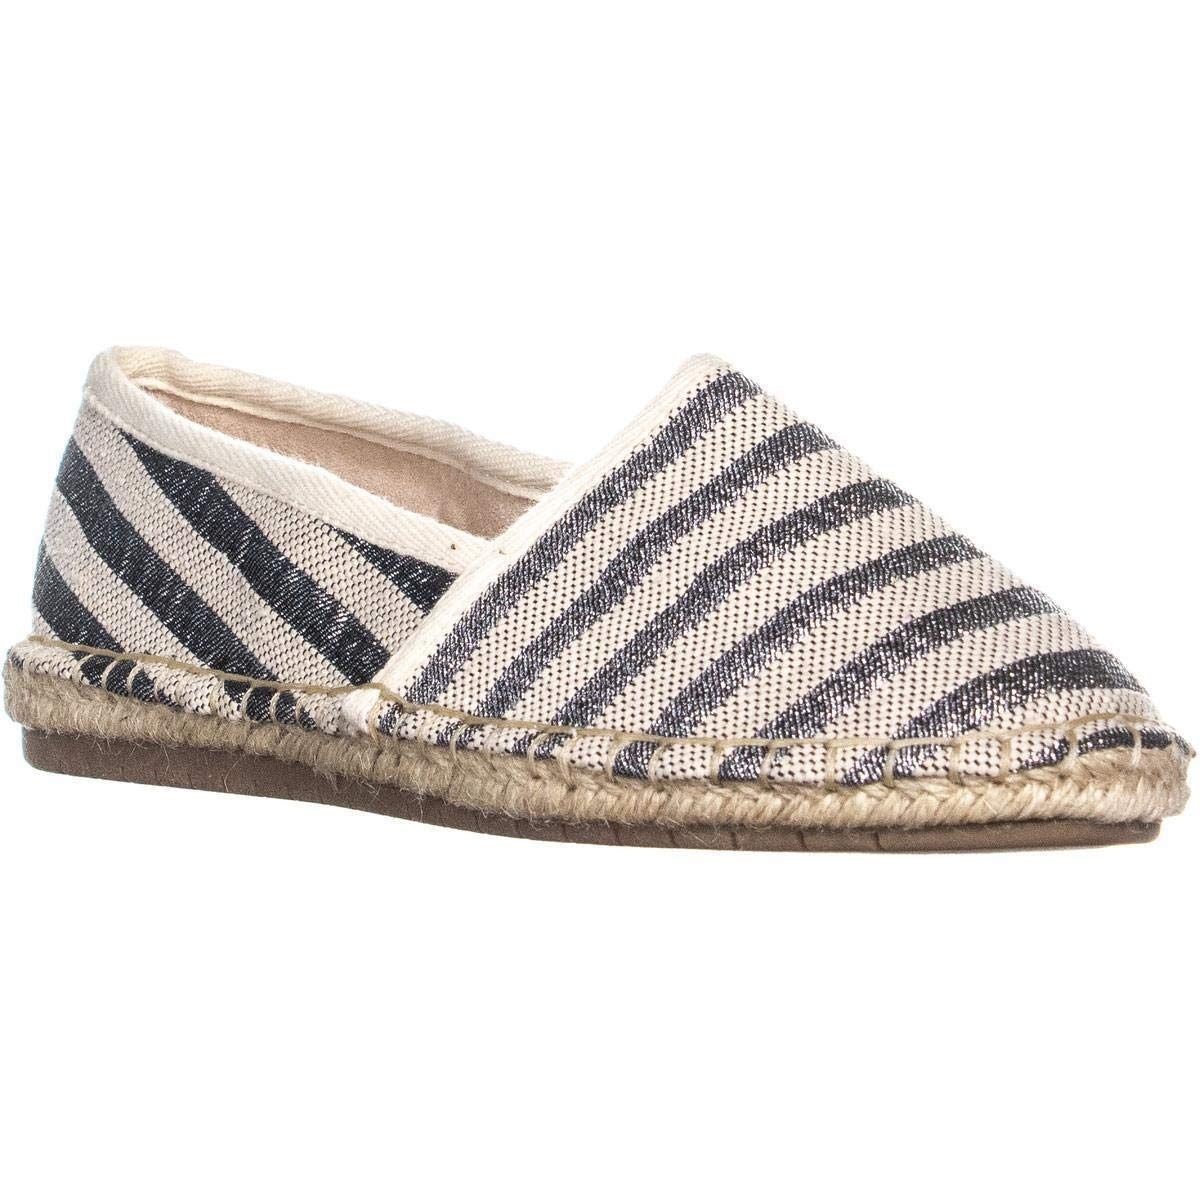 Charter Club Womens Joeey Fabric Closed Toe Espadrille Flats